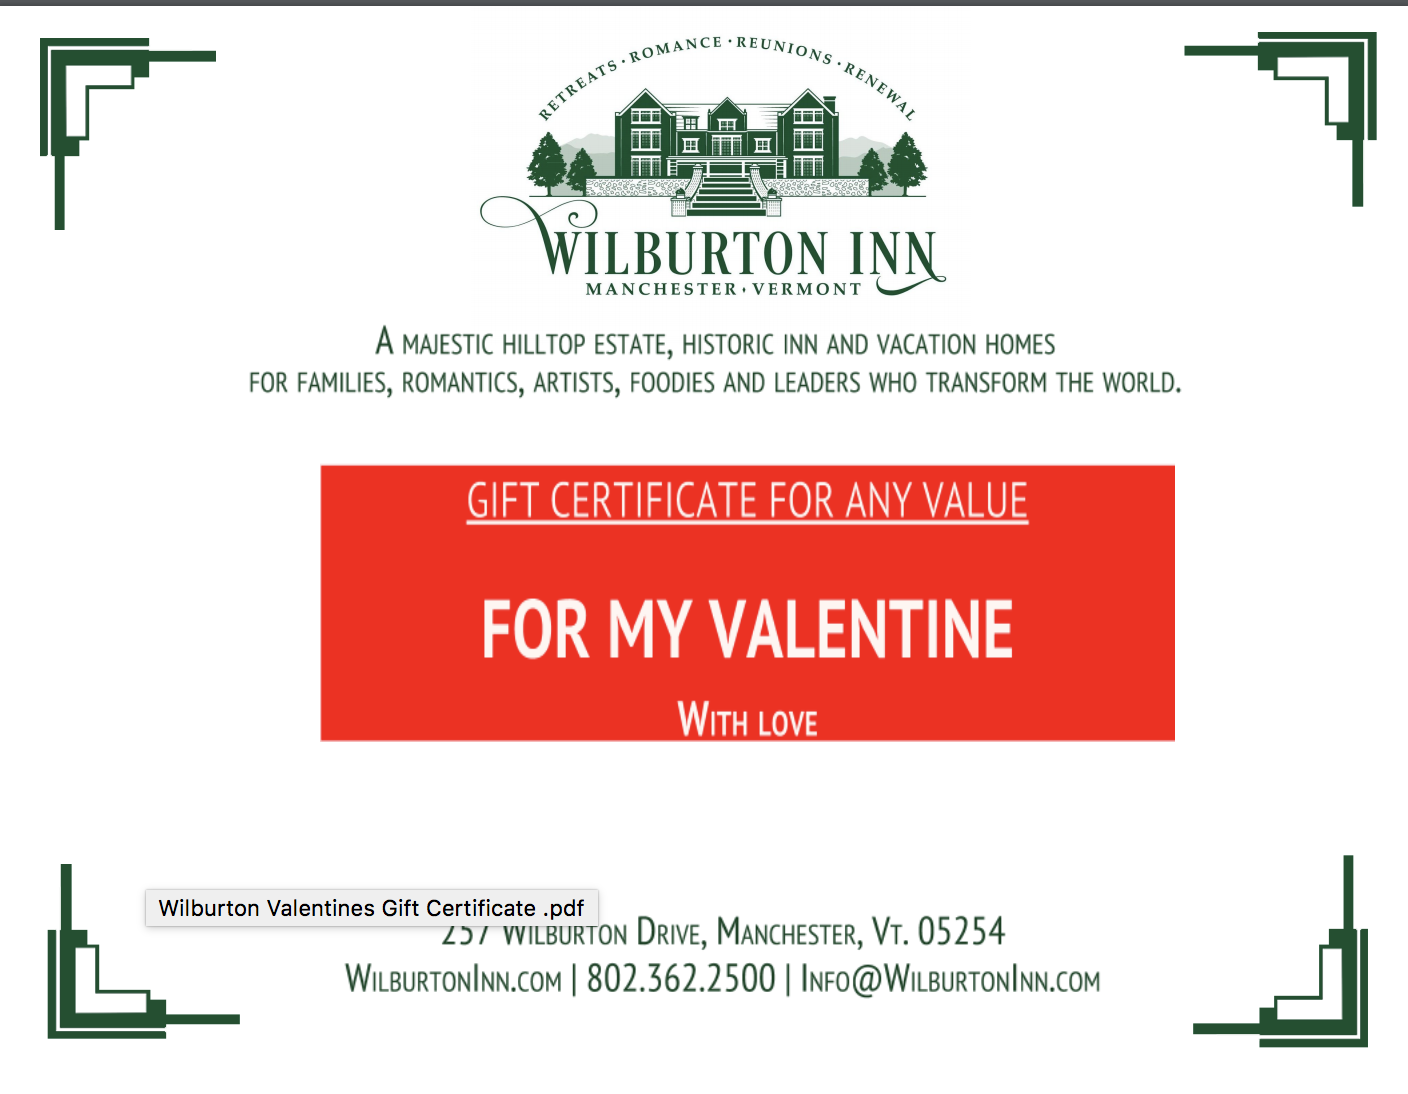 Valentines Day Gift Certificate.png